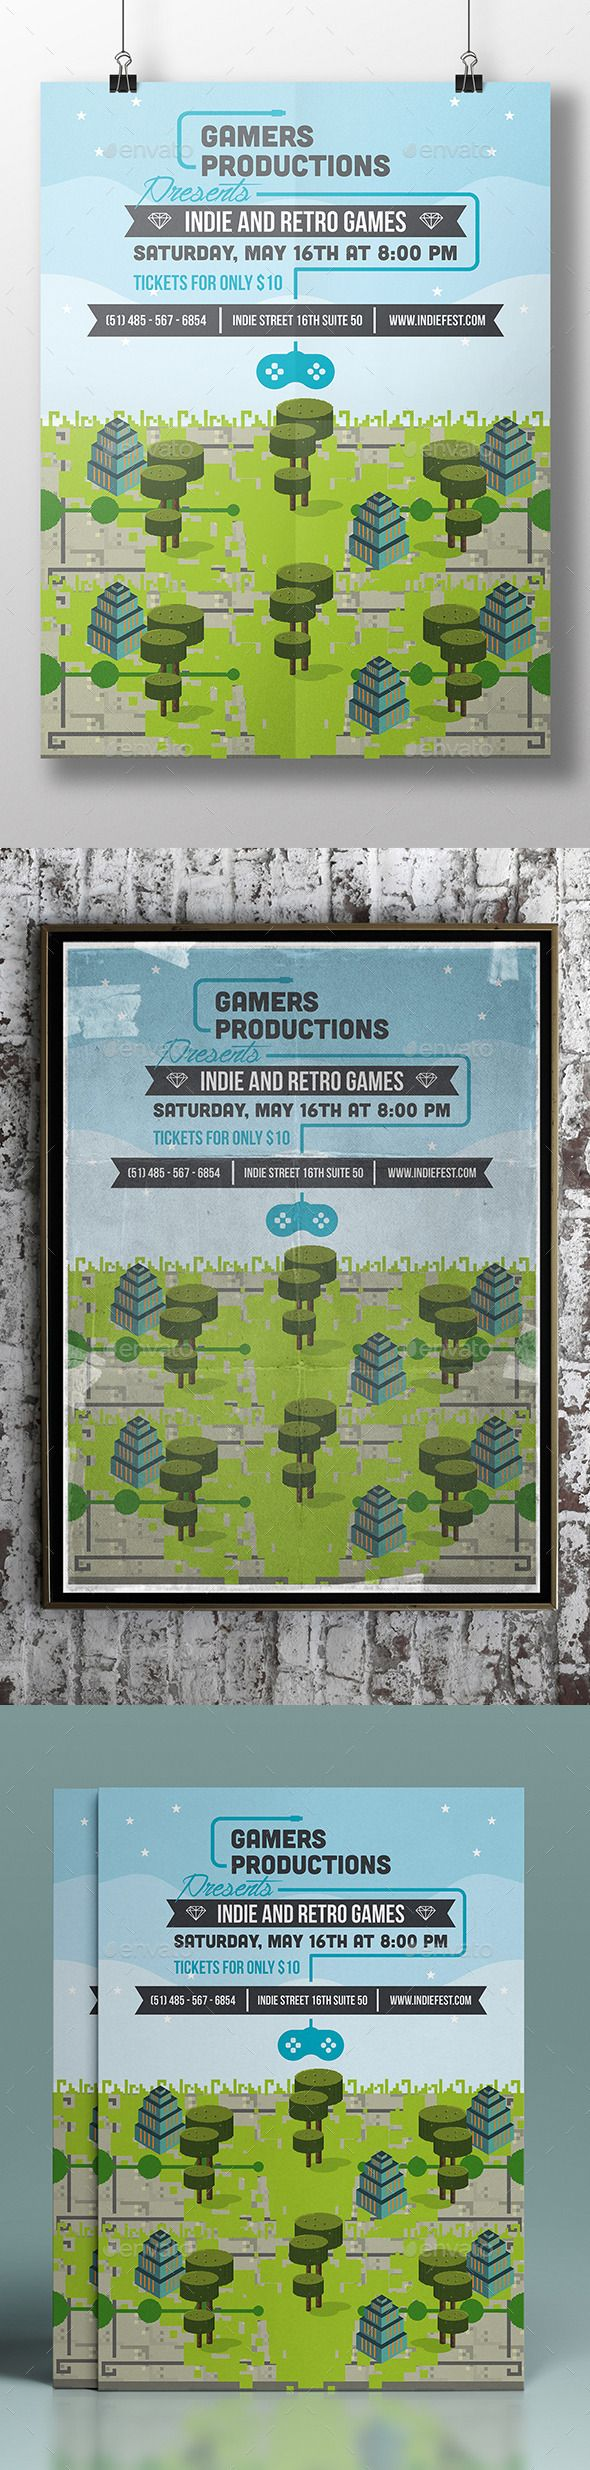 Game Festival Poster Template — Photoshop PSD #template #festival • Available here → https://graphicriver.net/item/game-festival-poster-template/11263075?ref=pxcr